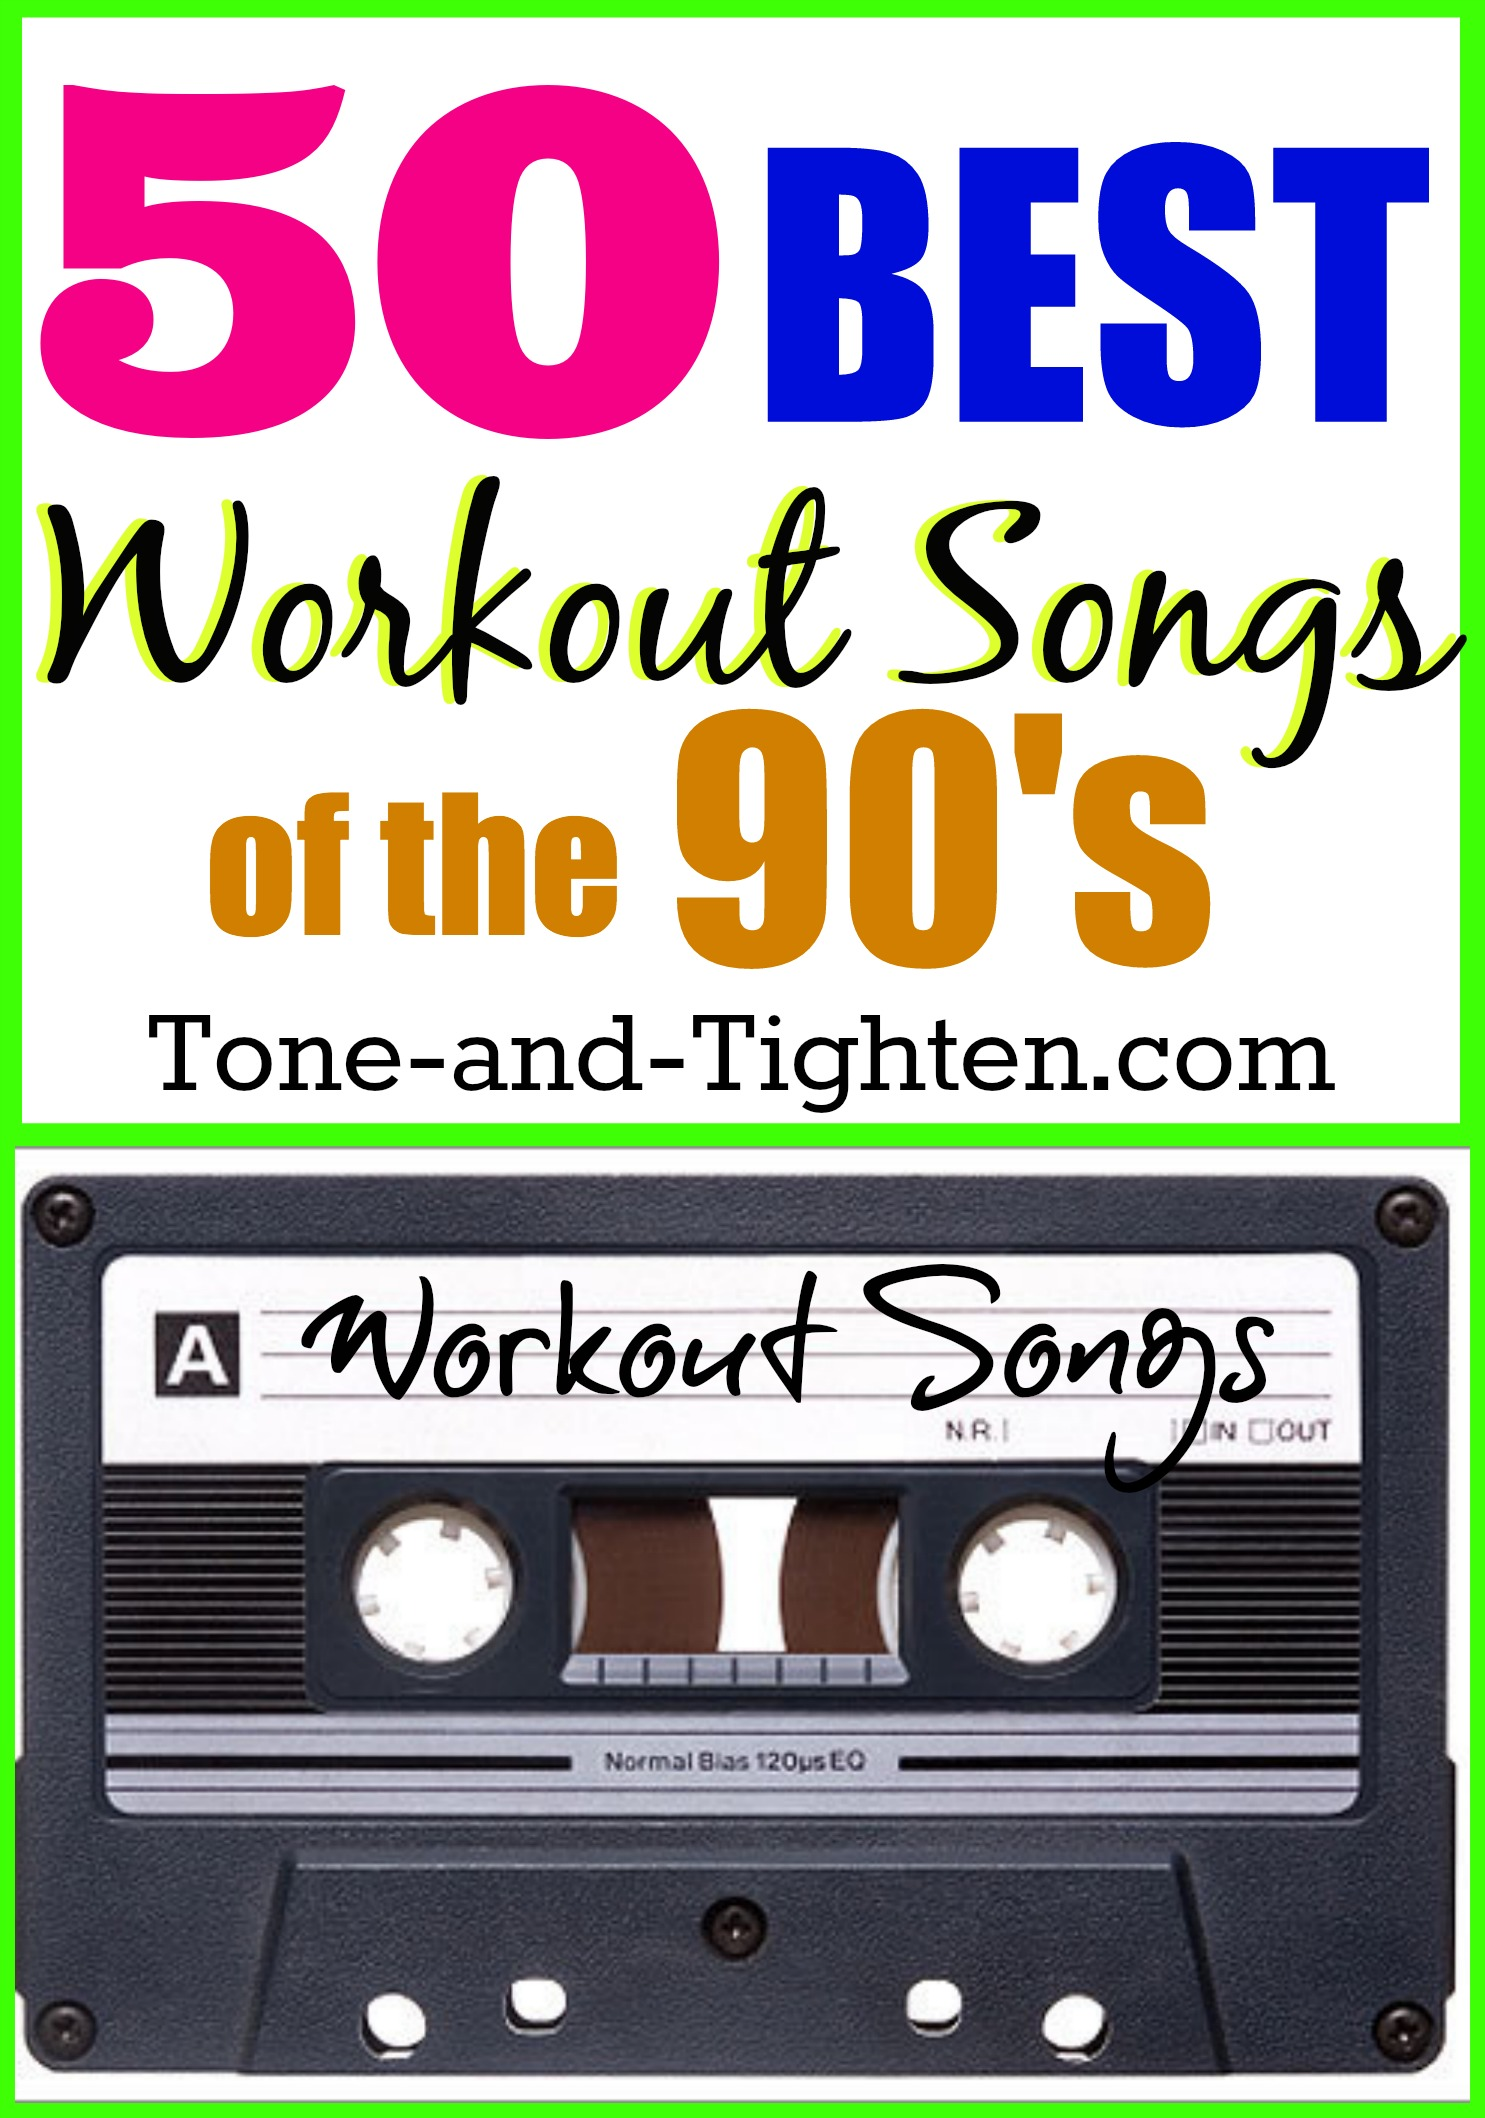 Top 100 Workout Songs | POPSUGAR Fitness